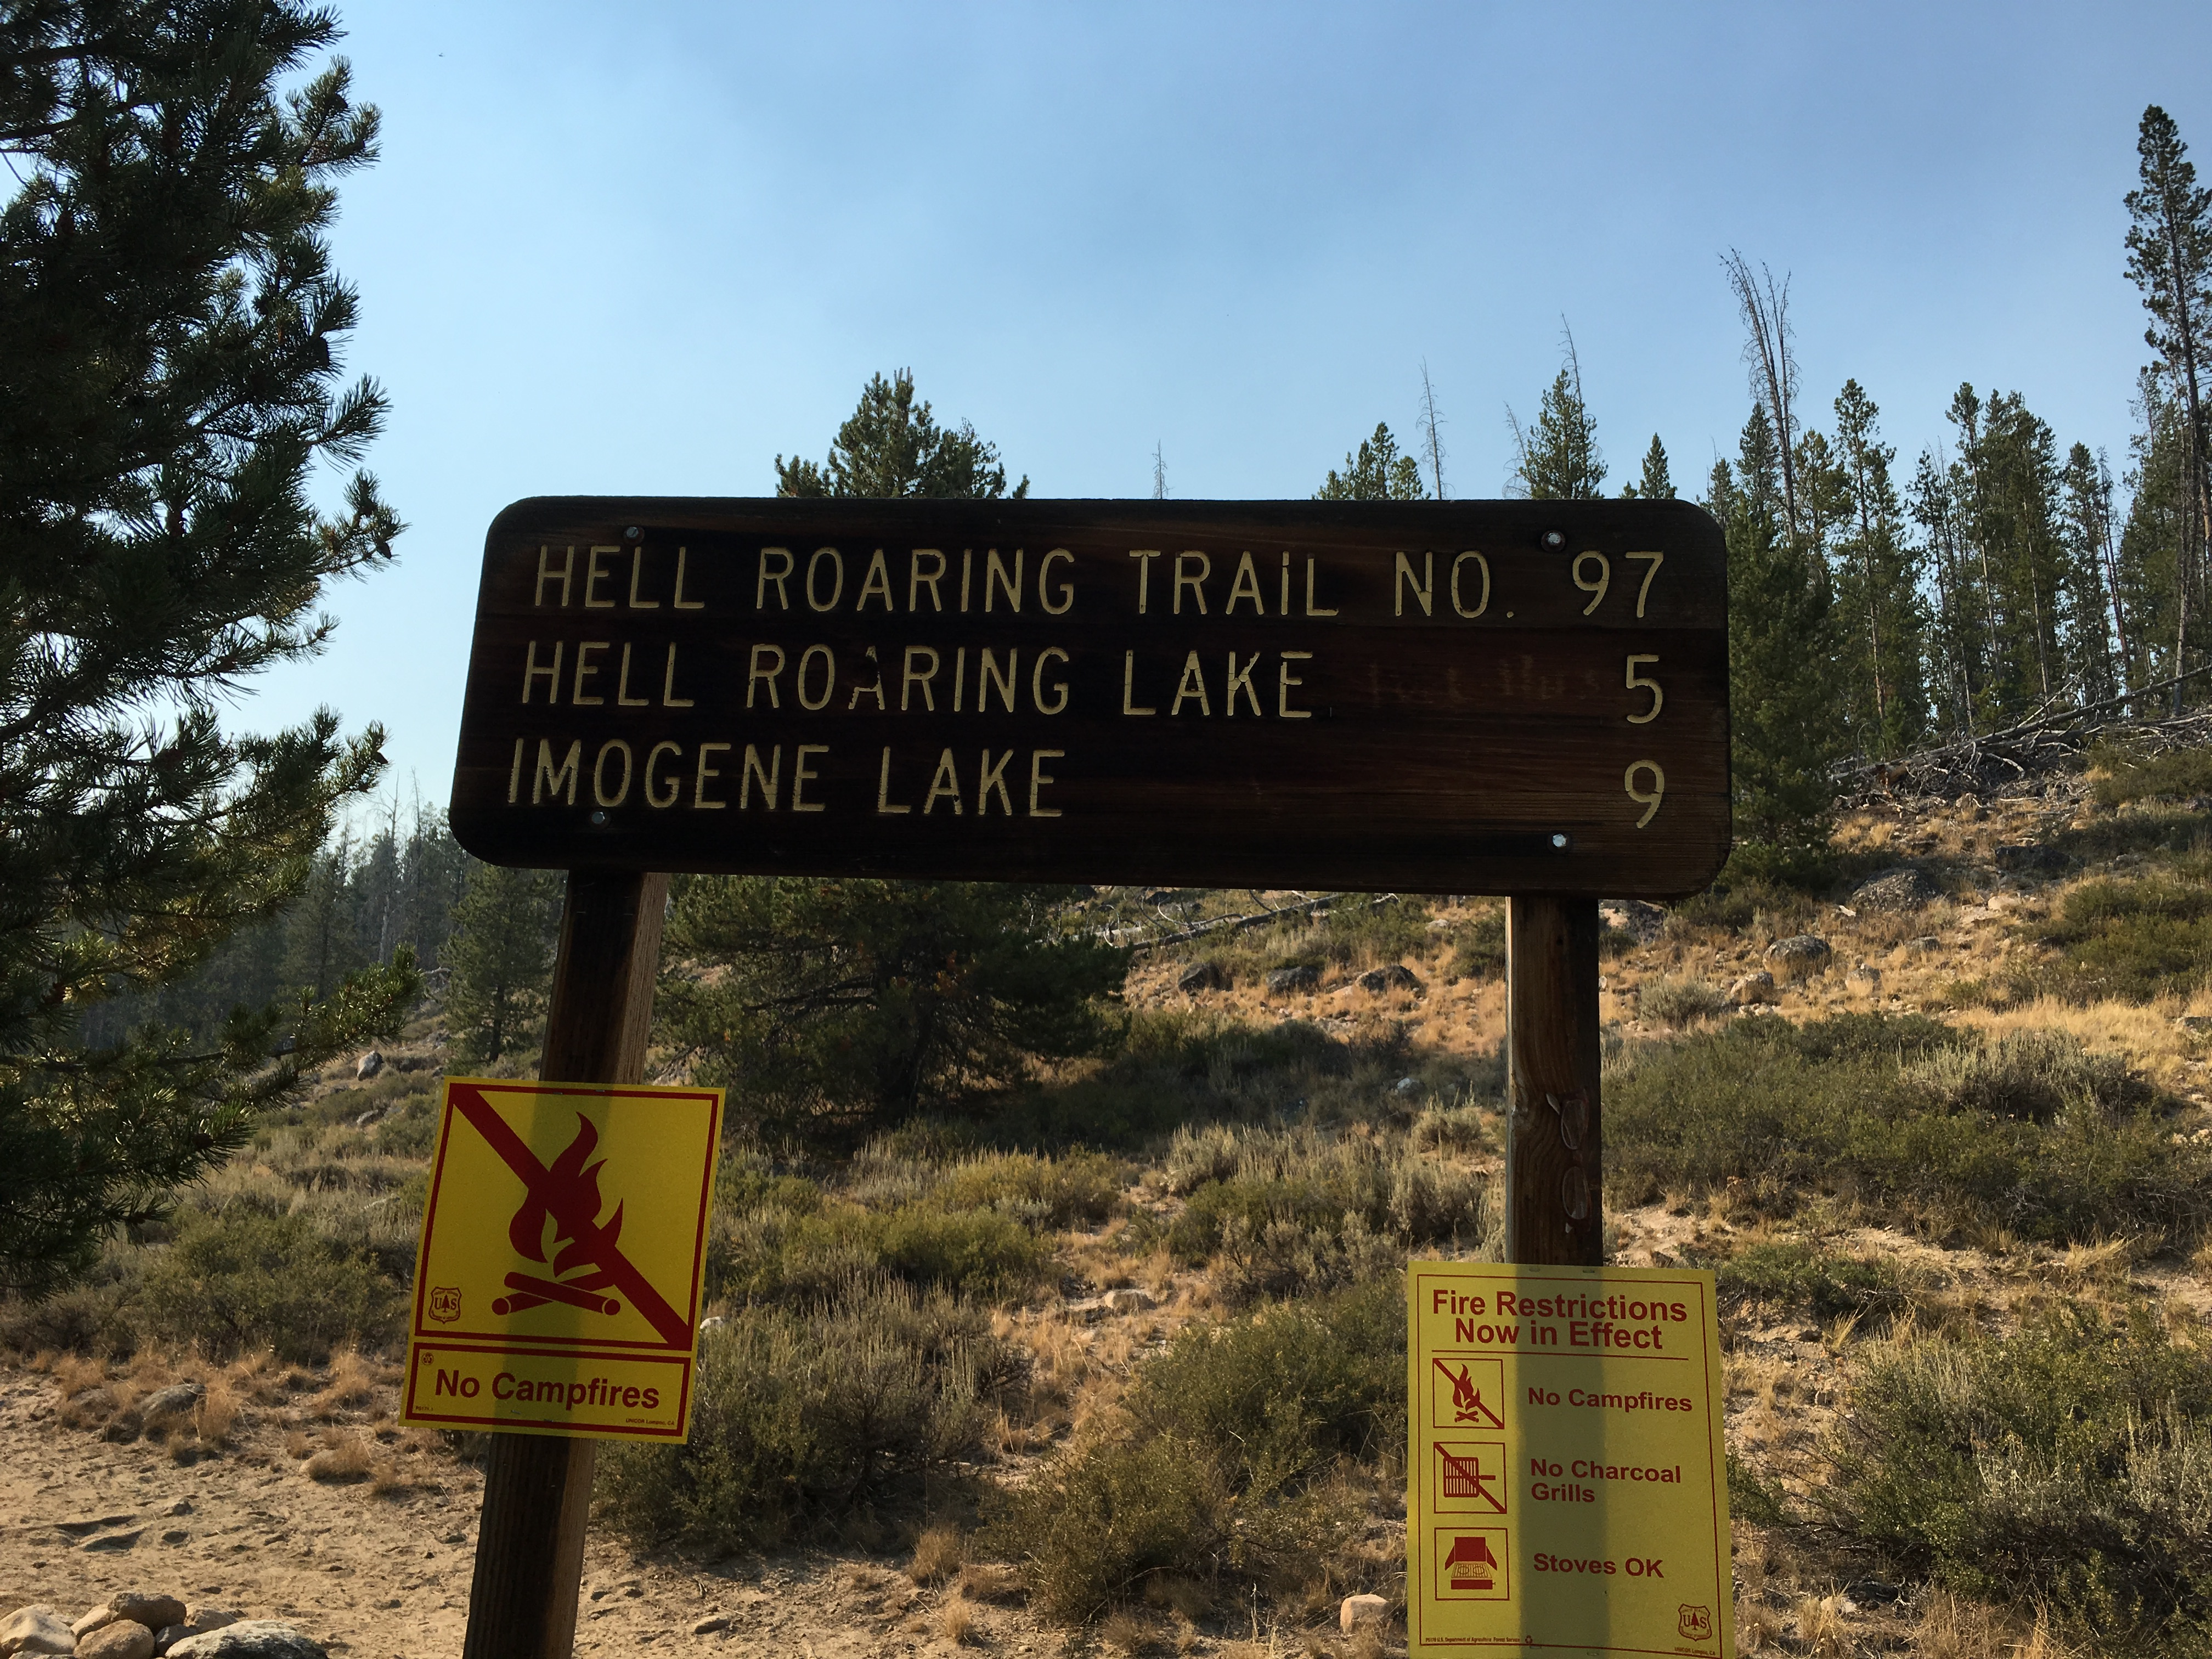 5 miles to Hell Roaring Lake!